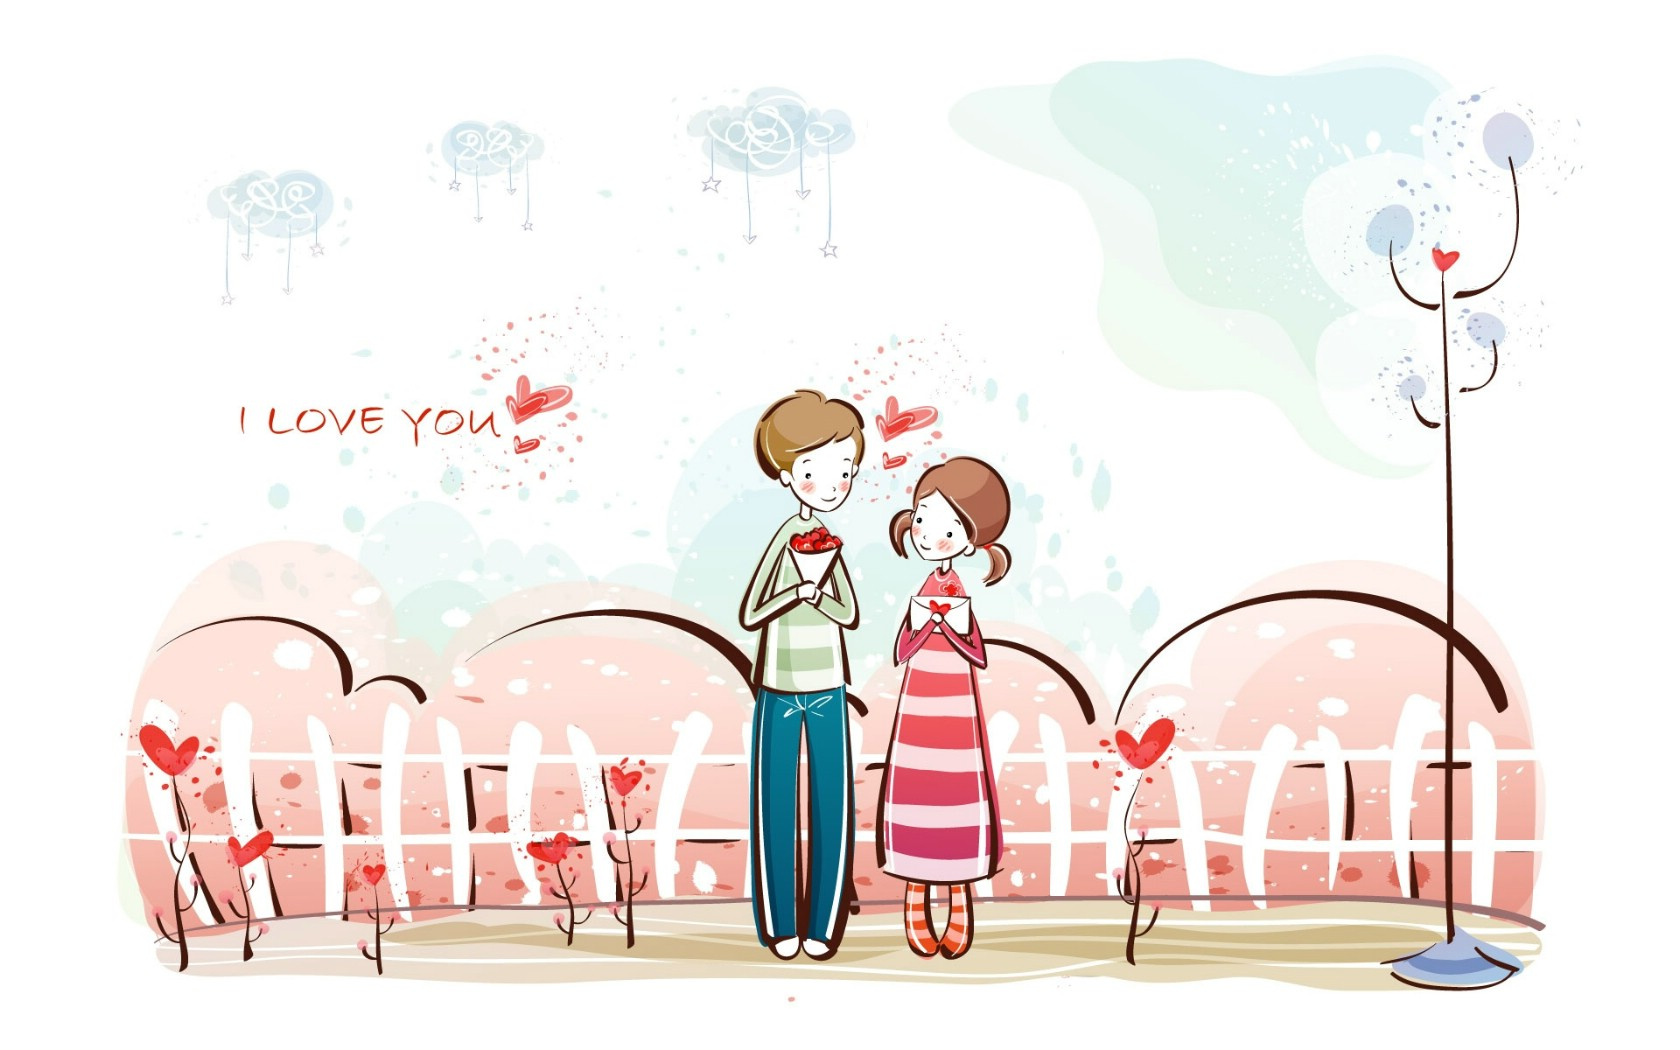 I Love Paris Wallpaper cartoon : ??1680x1050????????????,??????????????-????-??????-????